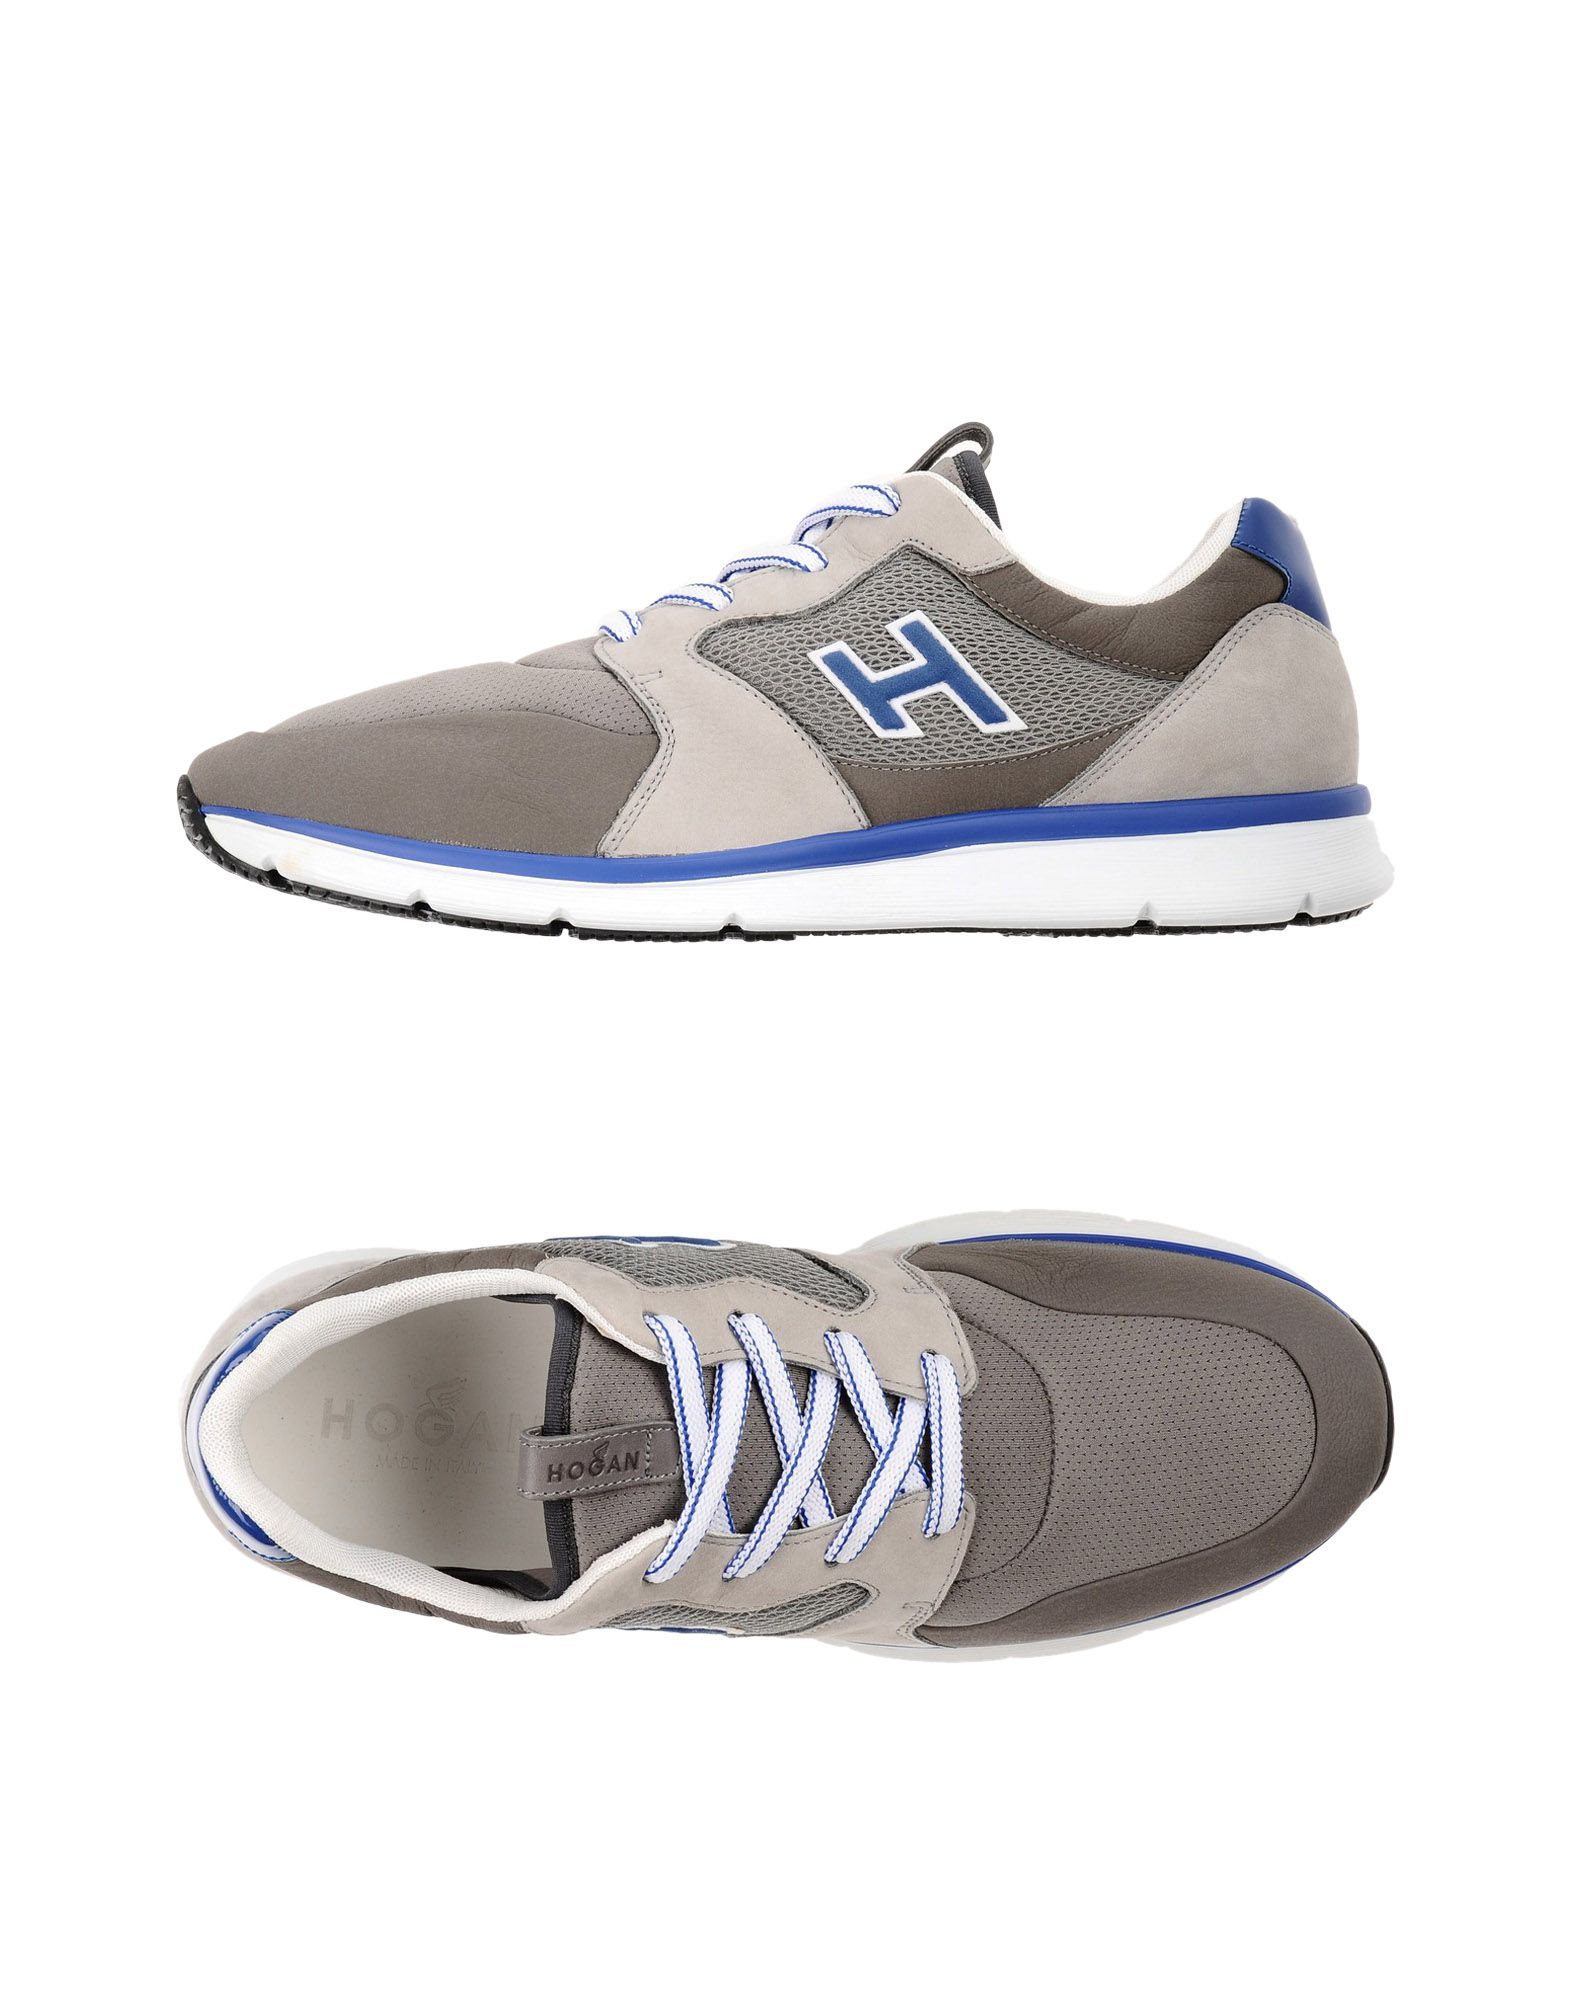 Hogan Sneakers Sneakers Sneakers - Men Hogan Sneakers online on  United Kingdom - 11332419SO e0f675